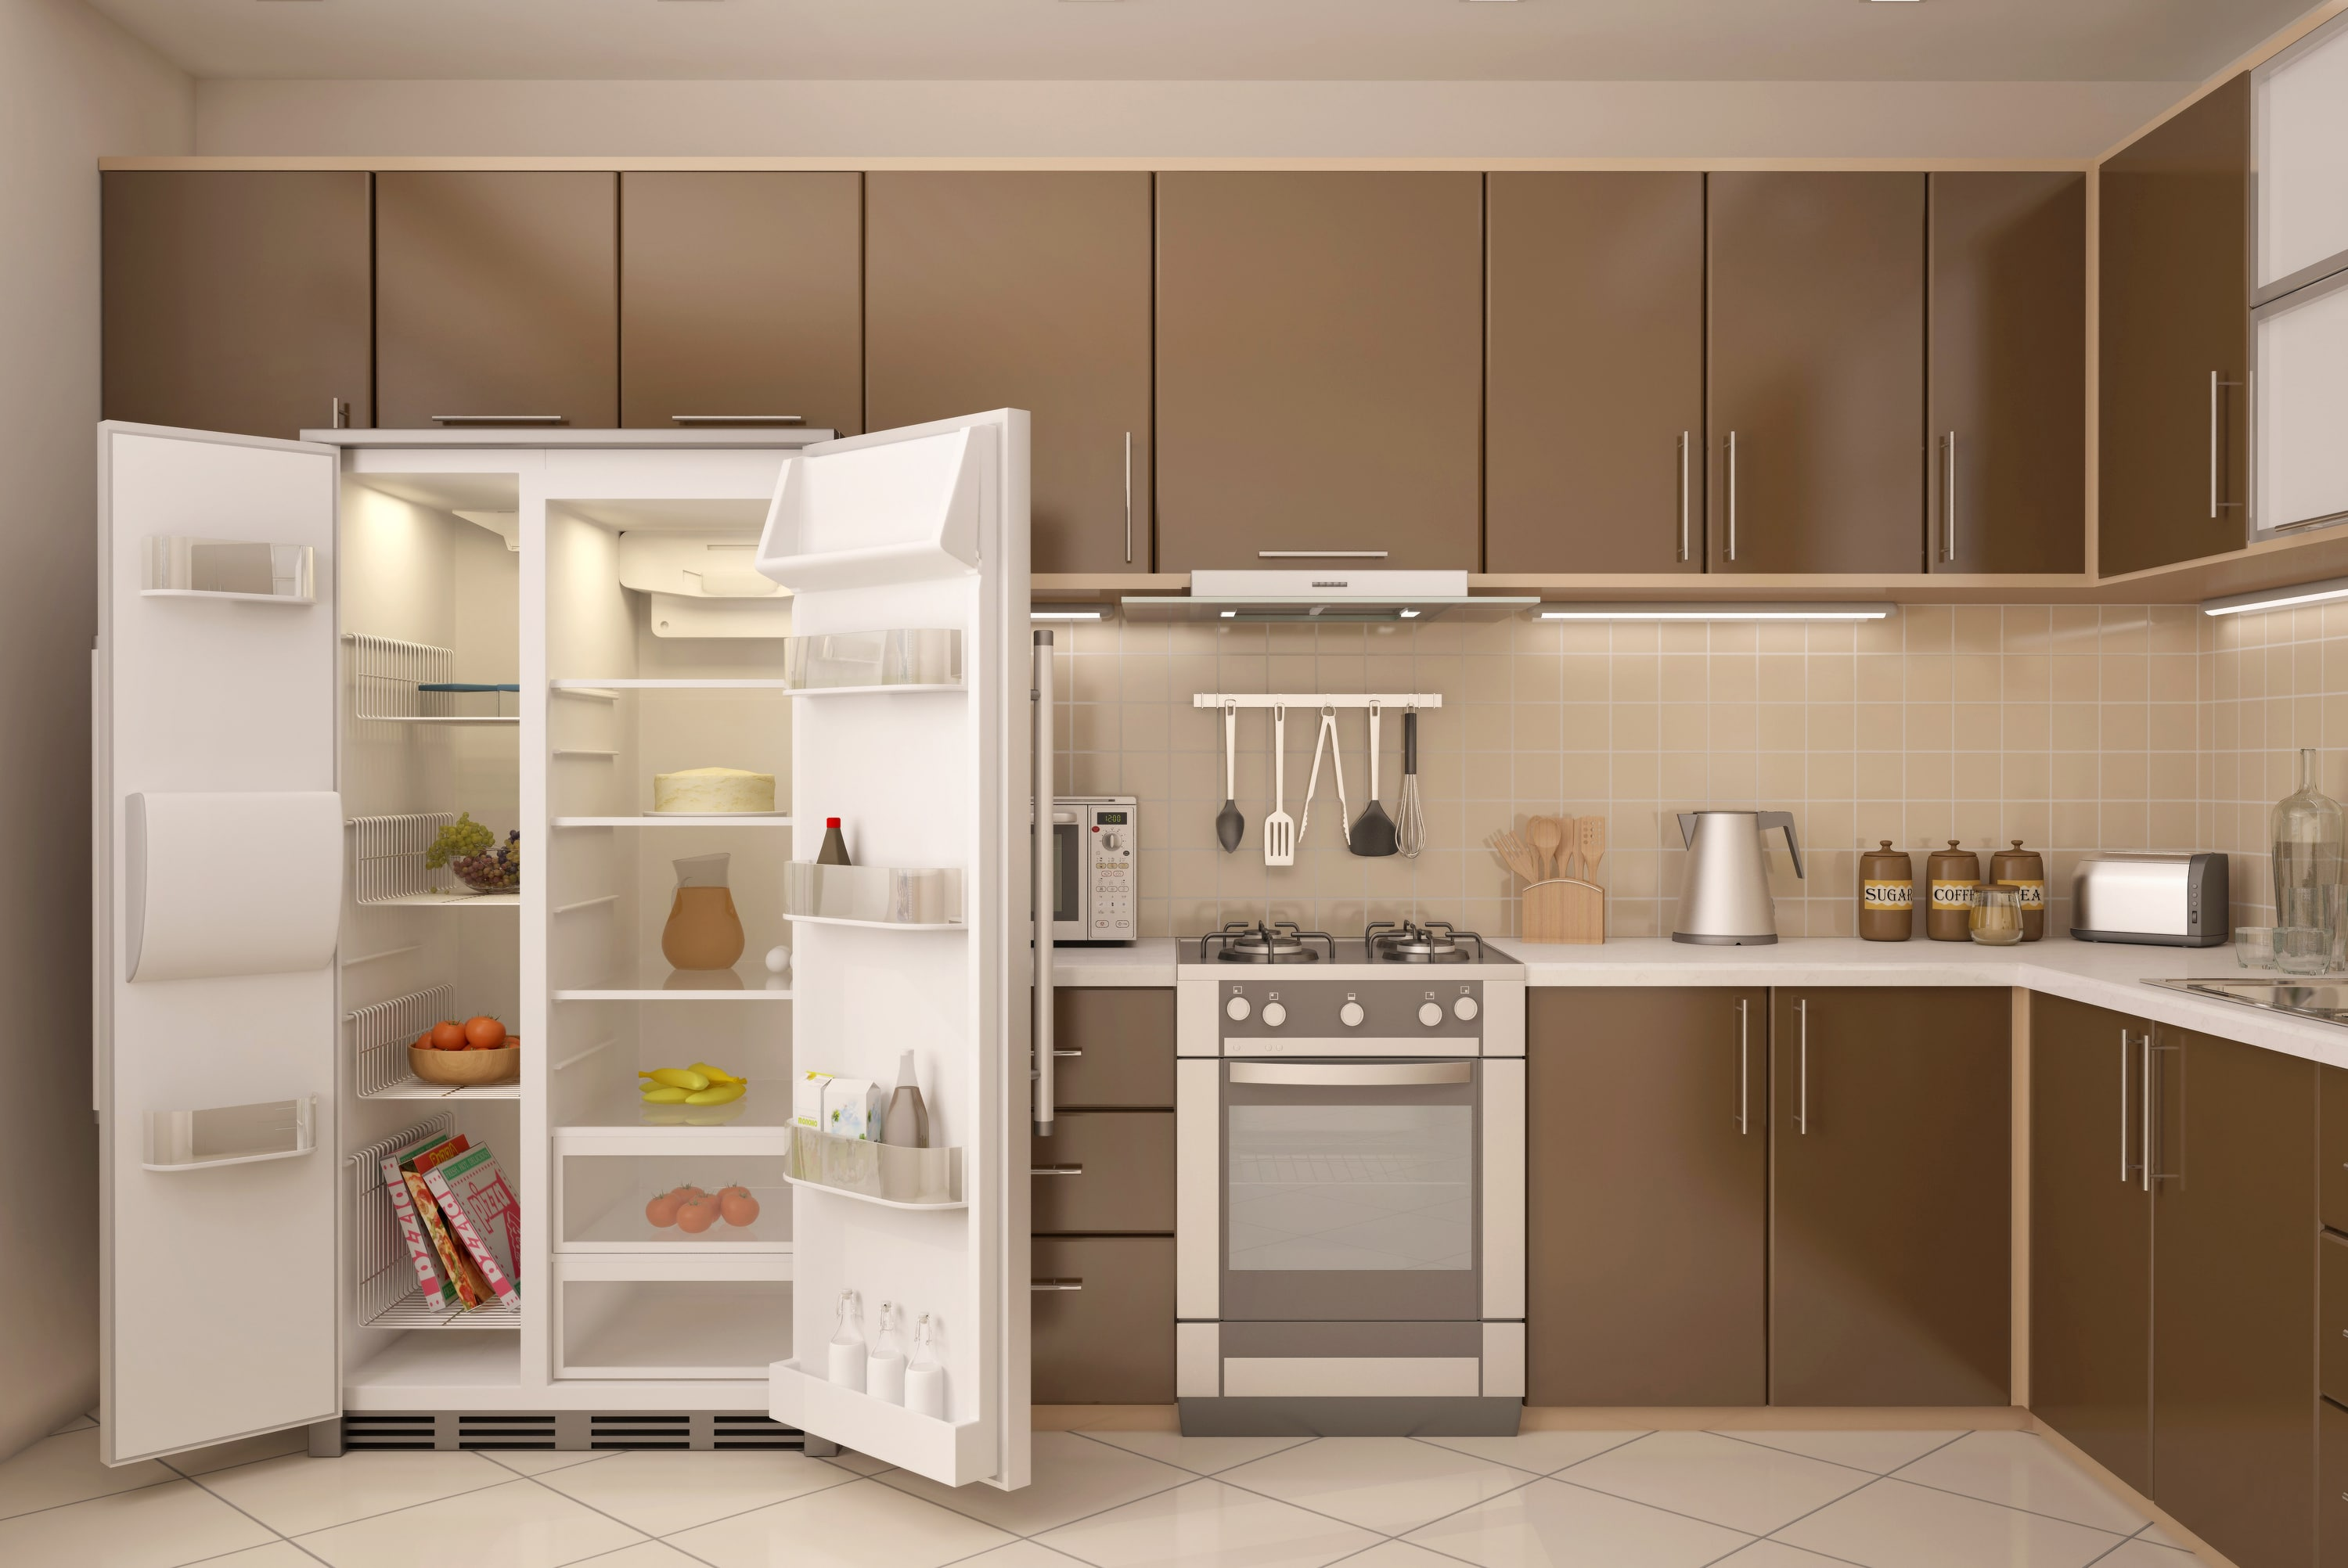 Best 5 Refrigerators to Look for India in 2019: Features & Models